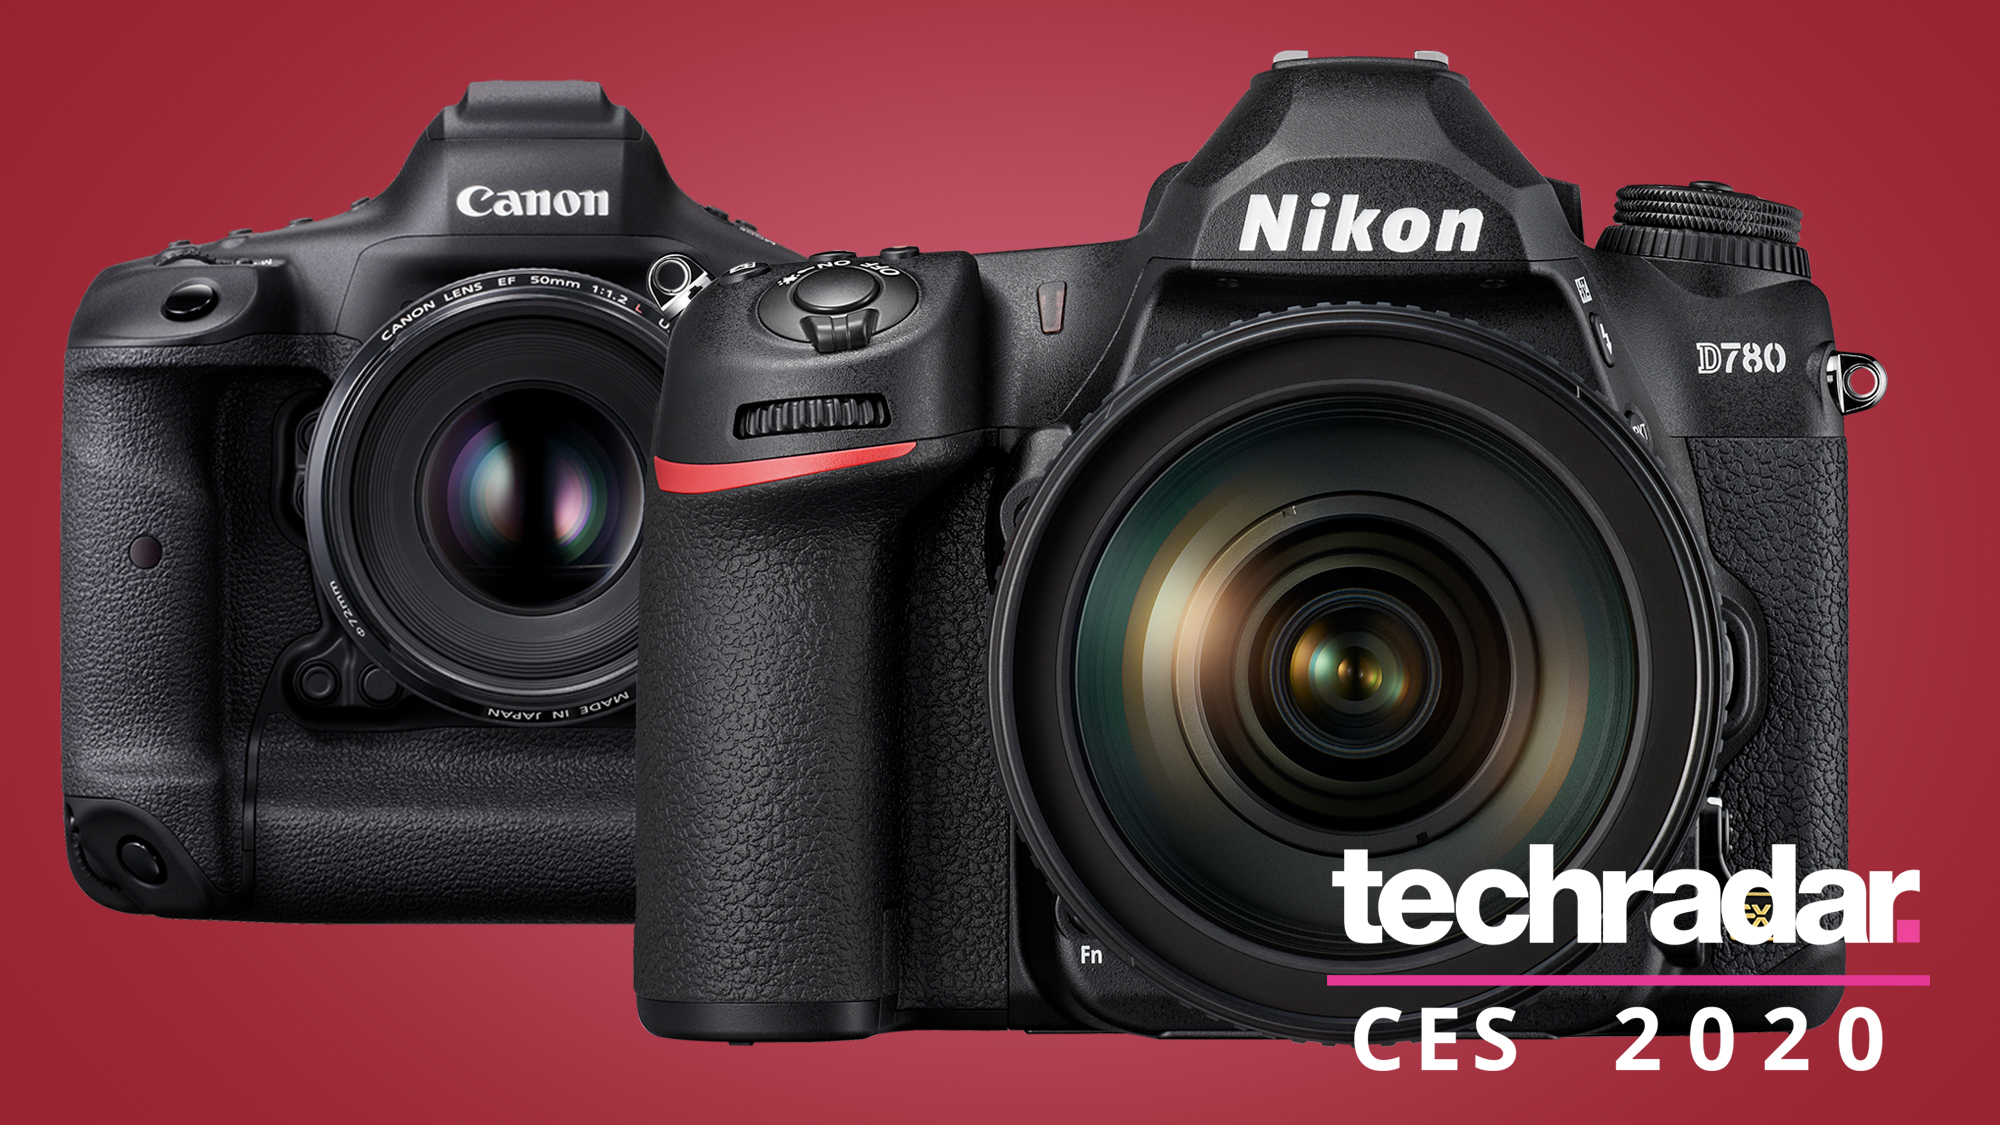 CES 2020: why the DSLR made a comeback at a show about future tech